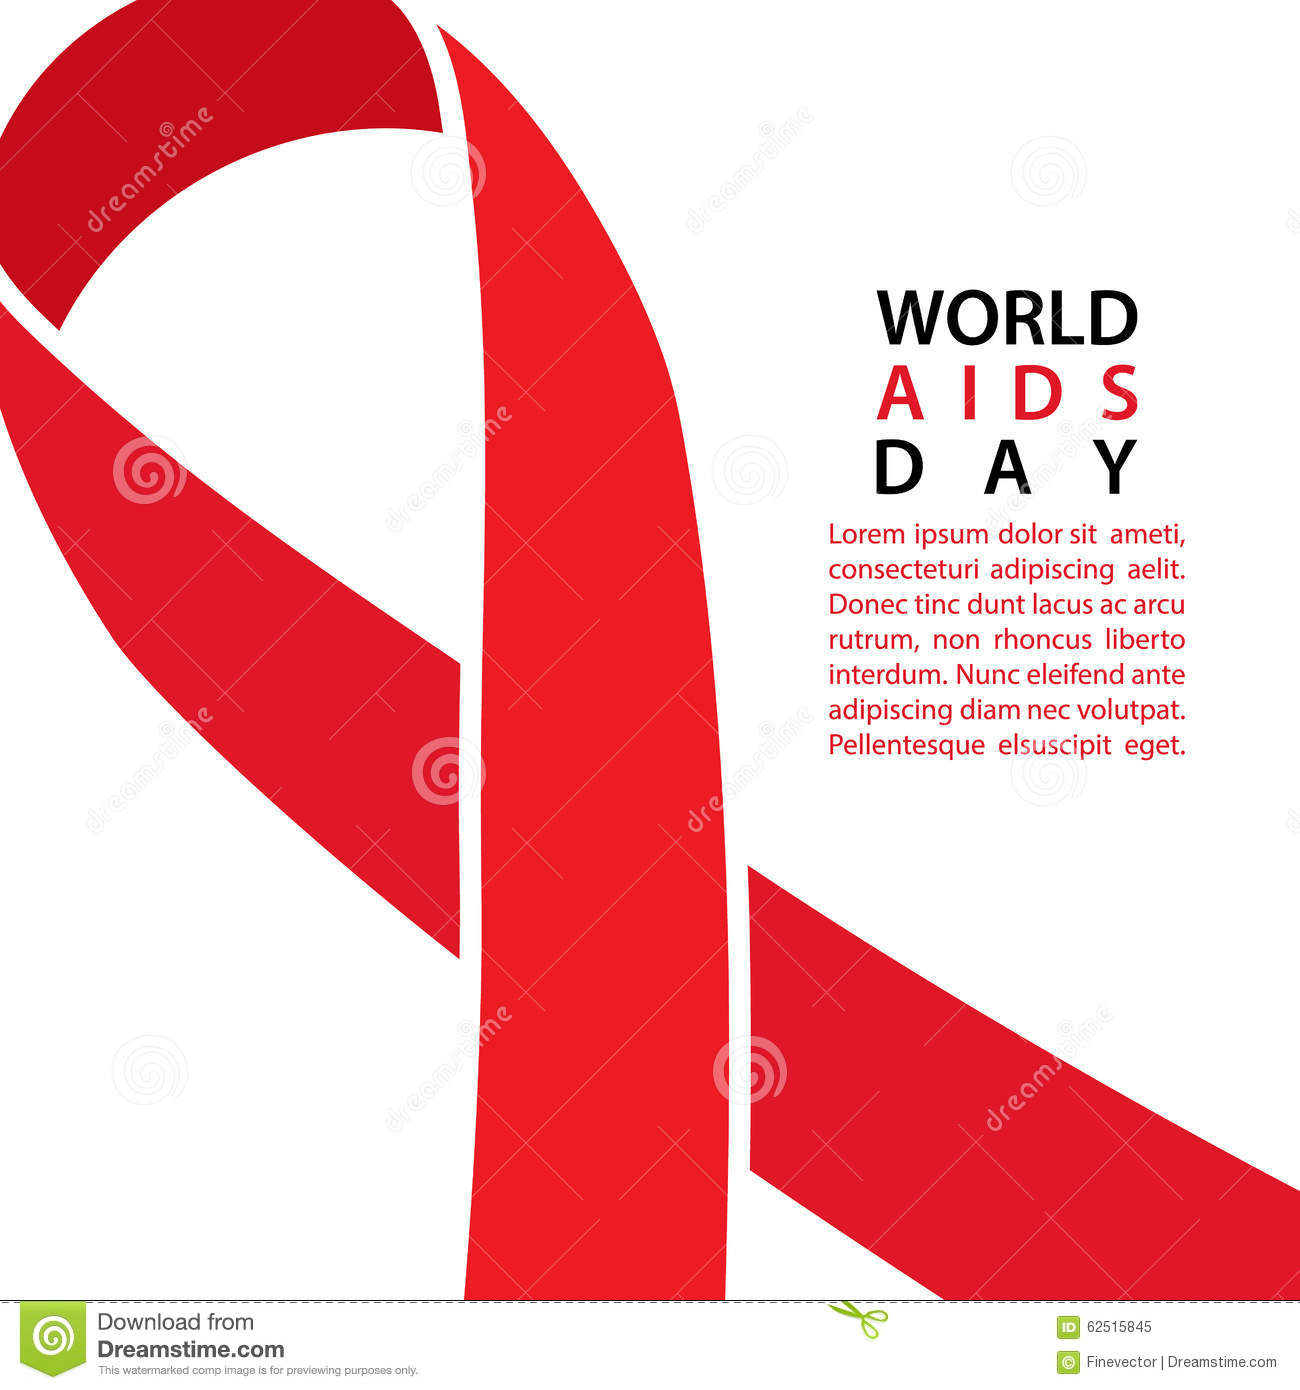 world aids day backgrounds - photo #21